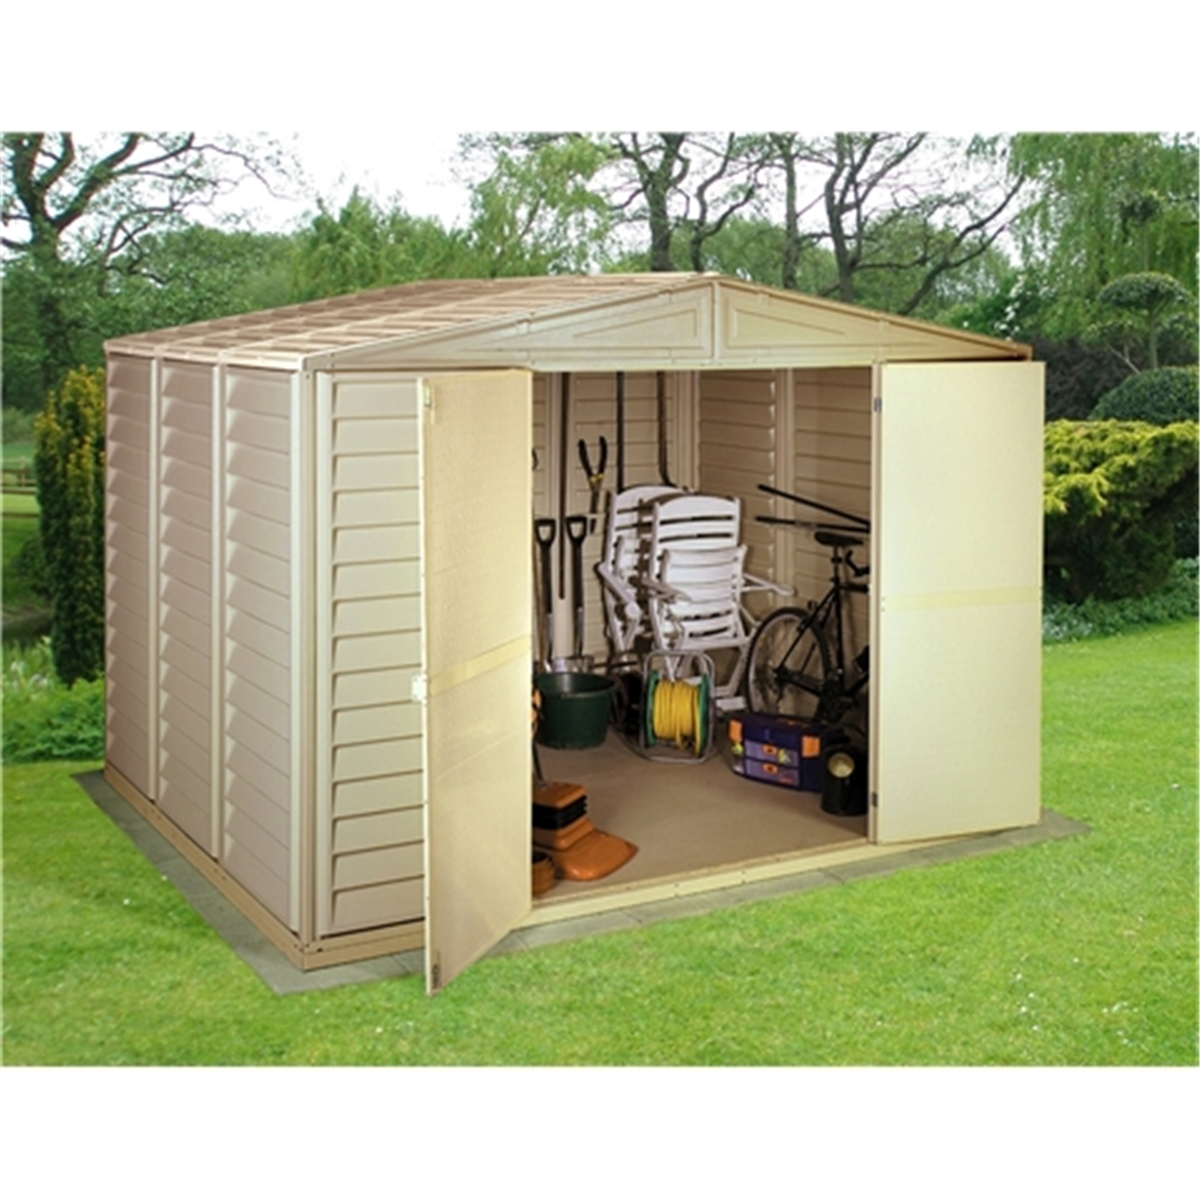 10 x 13 Select Duramax Plastic Pvc Shed With Steel Frame (3 19m x 3 98m) |  ShedsFirst